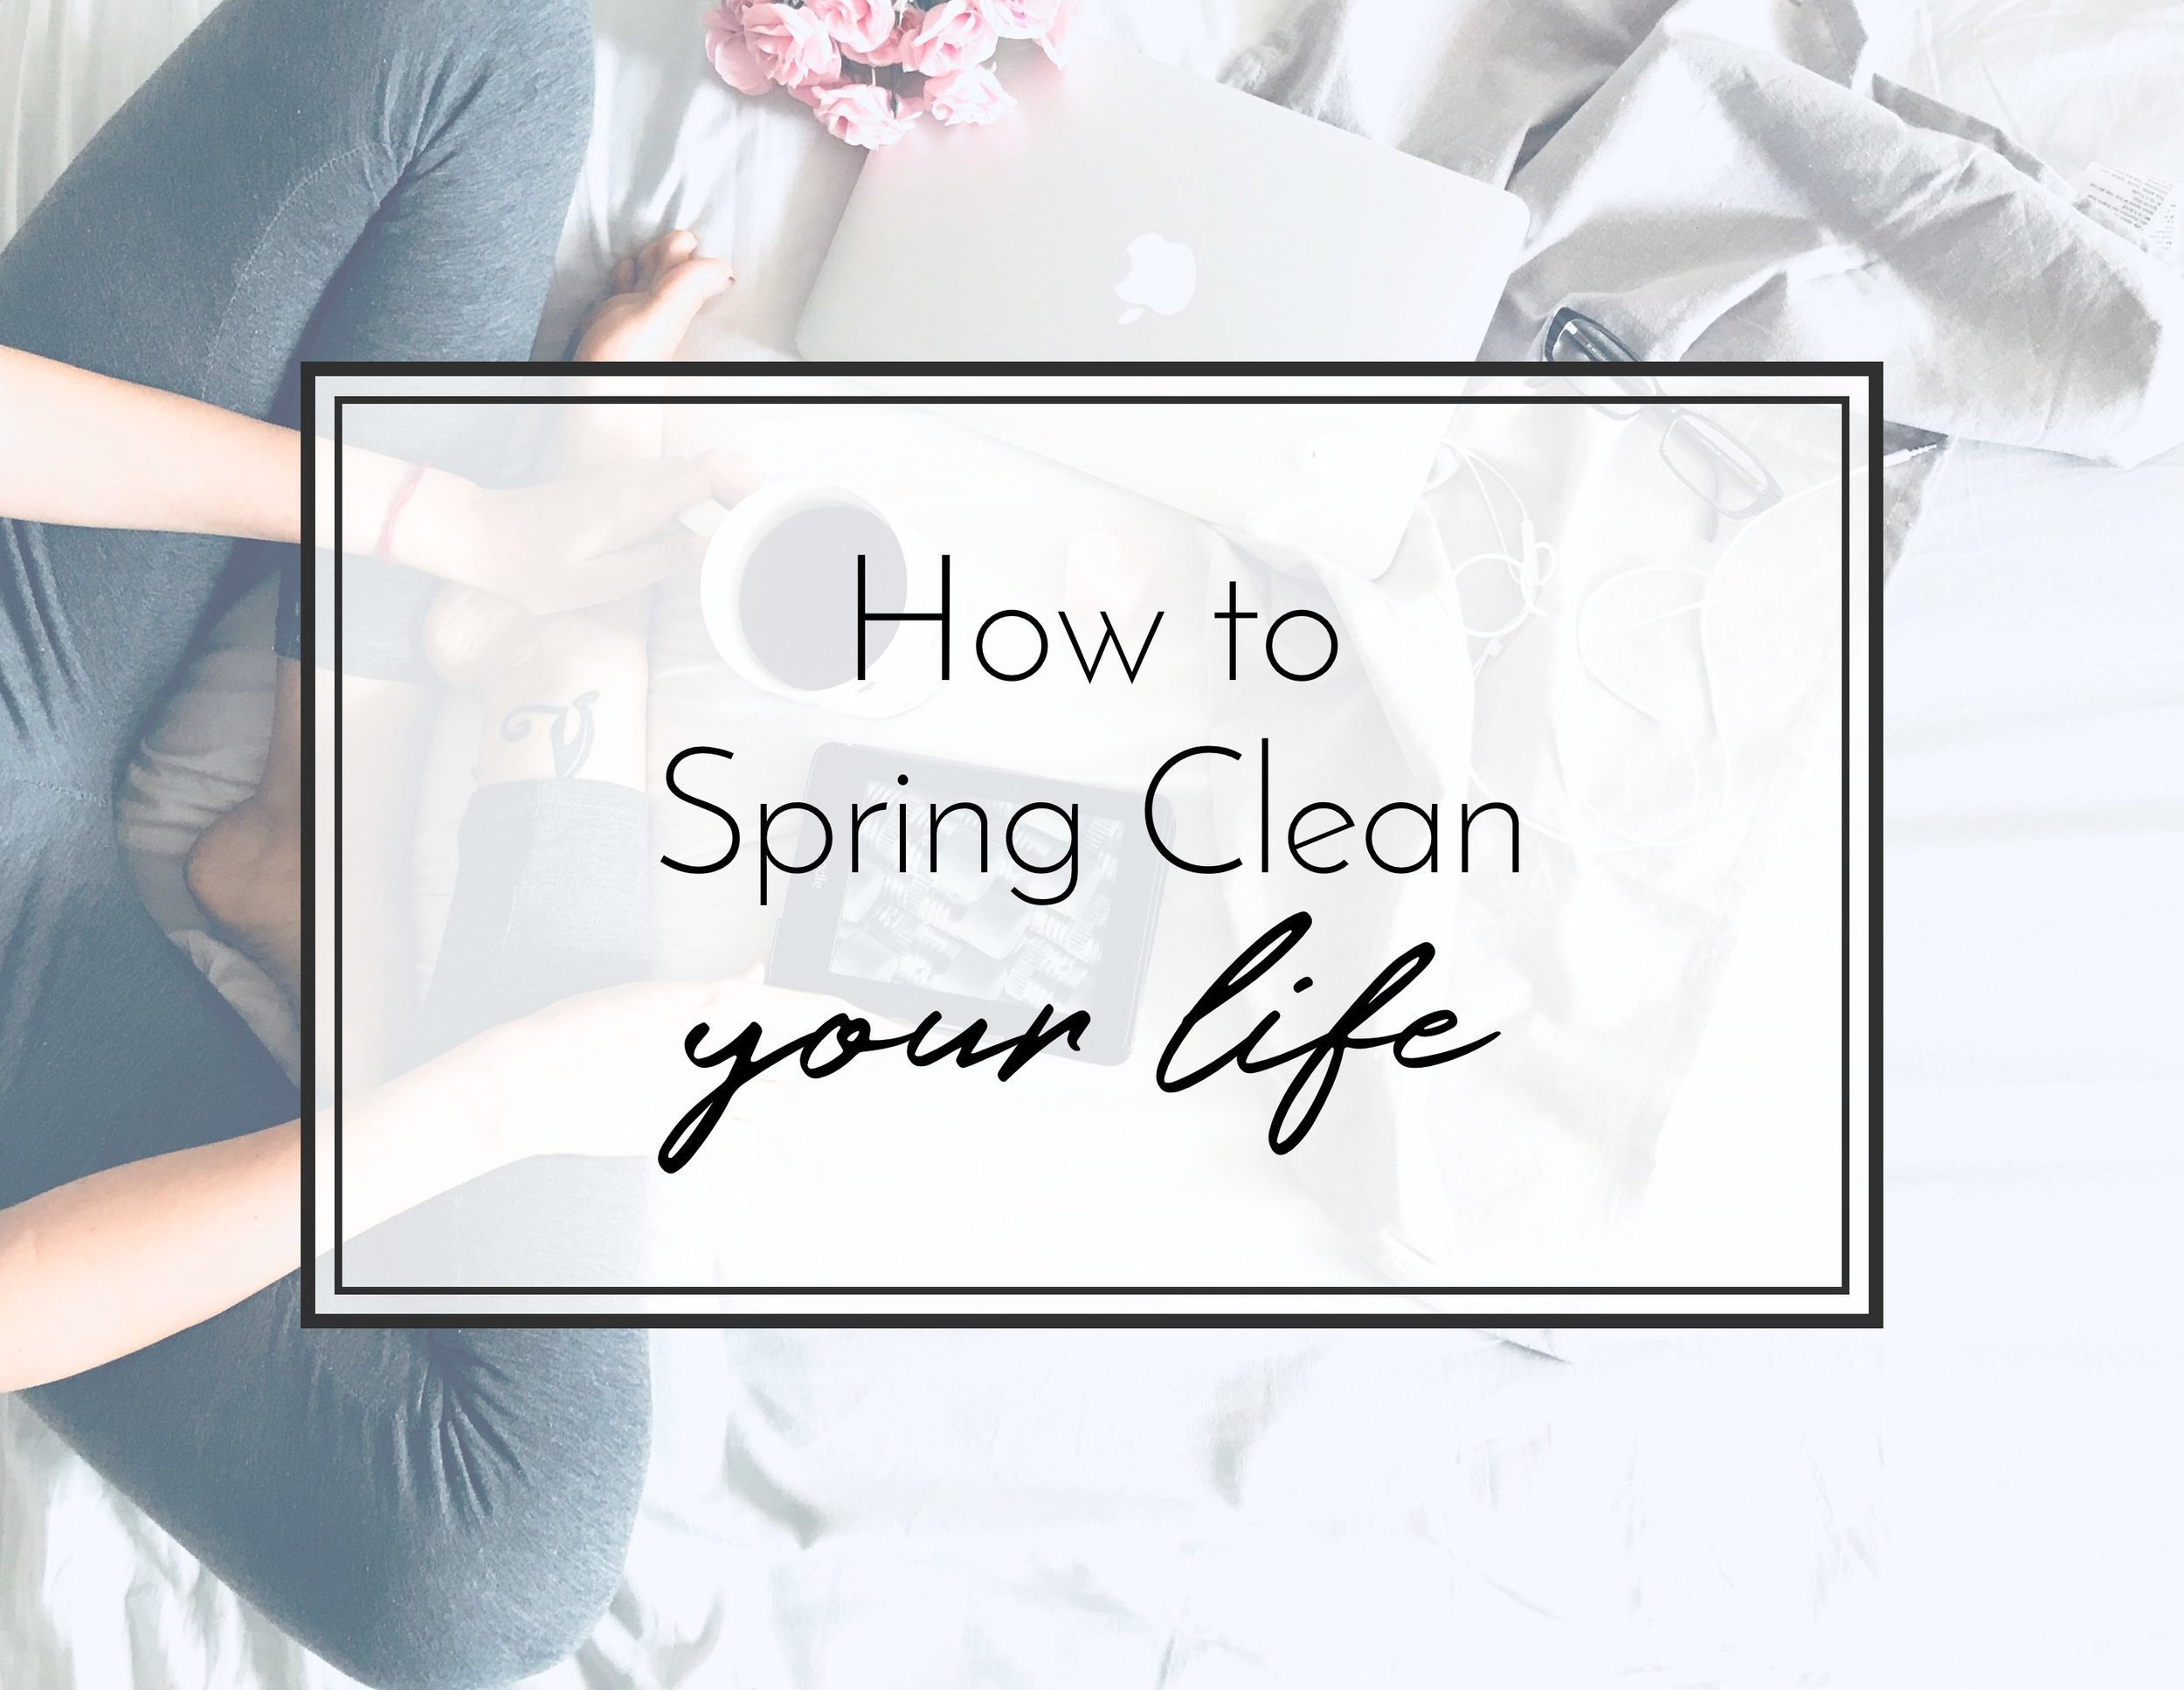 How to Spring Clean Your Life - 7 Day Plan to Clutter-Free Mind, Body and Space